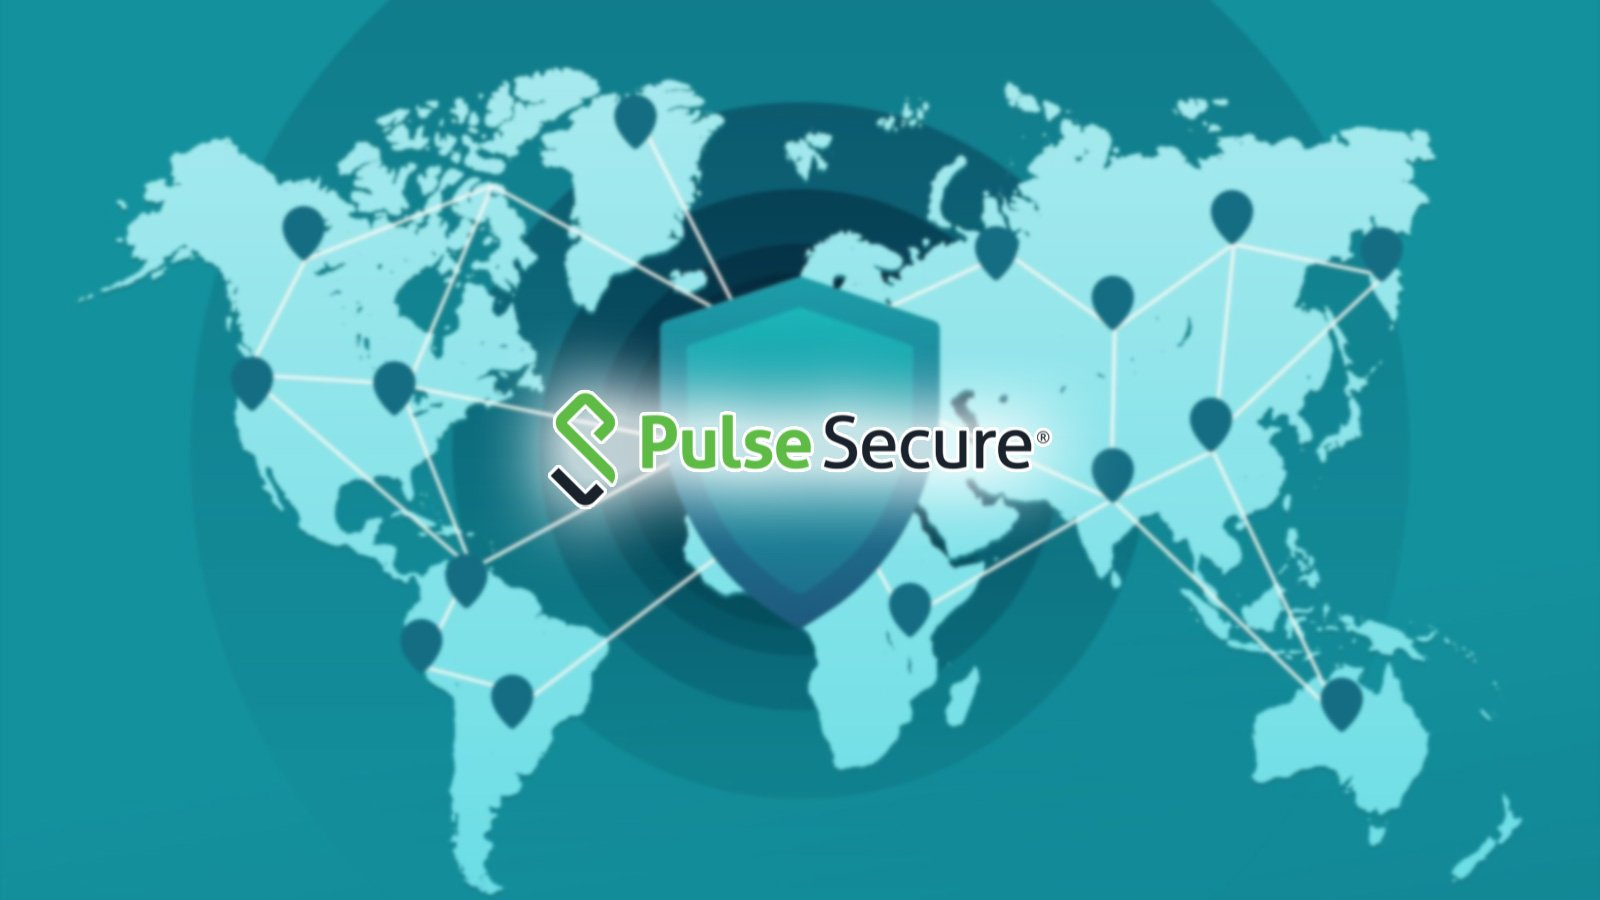 CISA finds 13 malware samples on compromised Pulse Secure devices